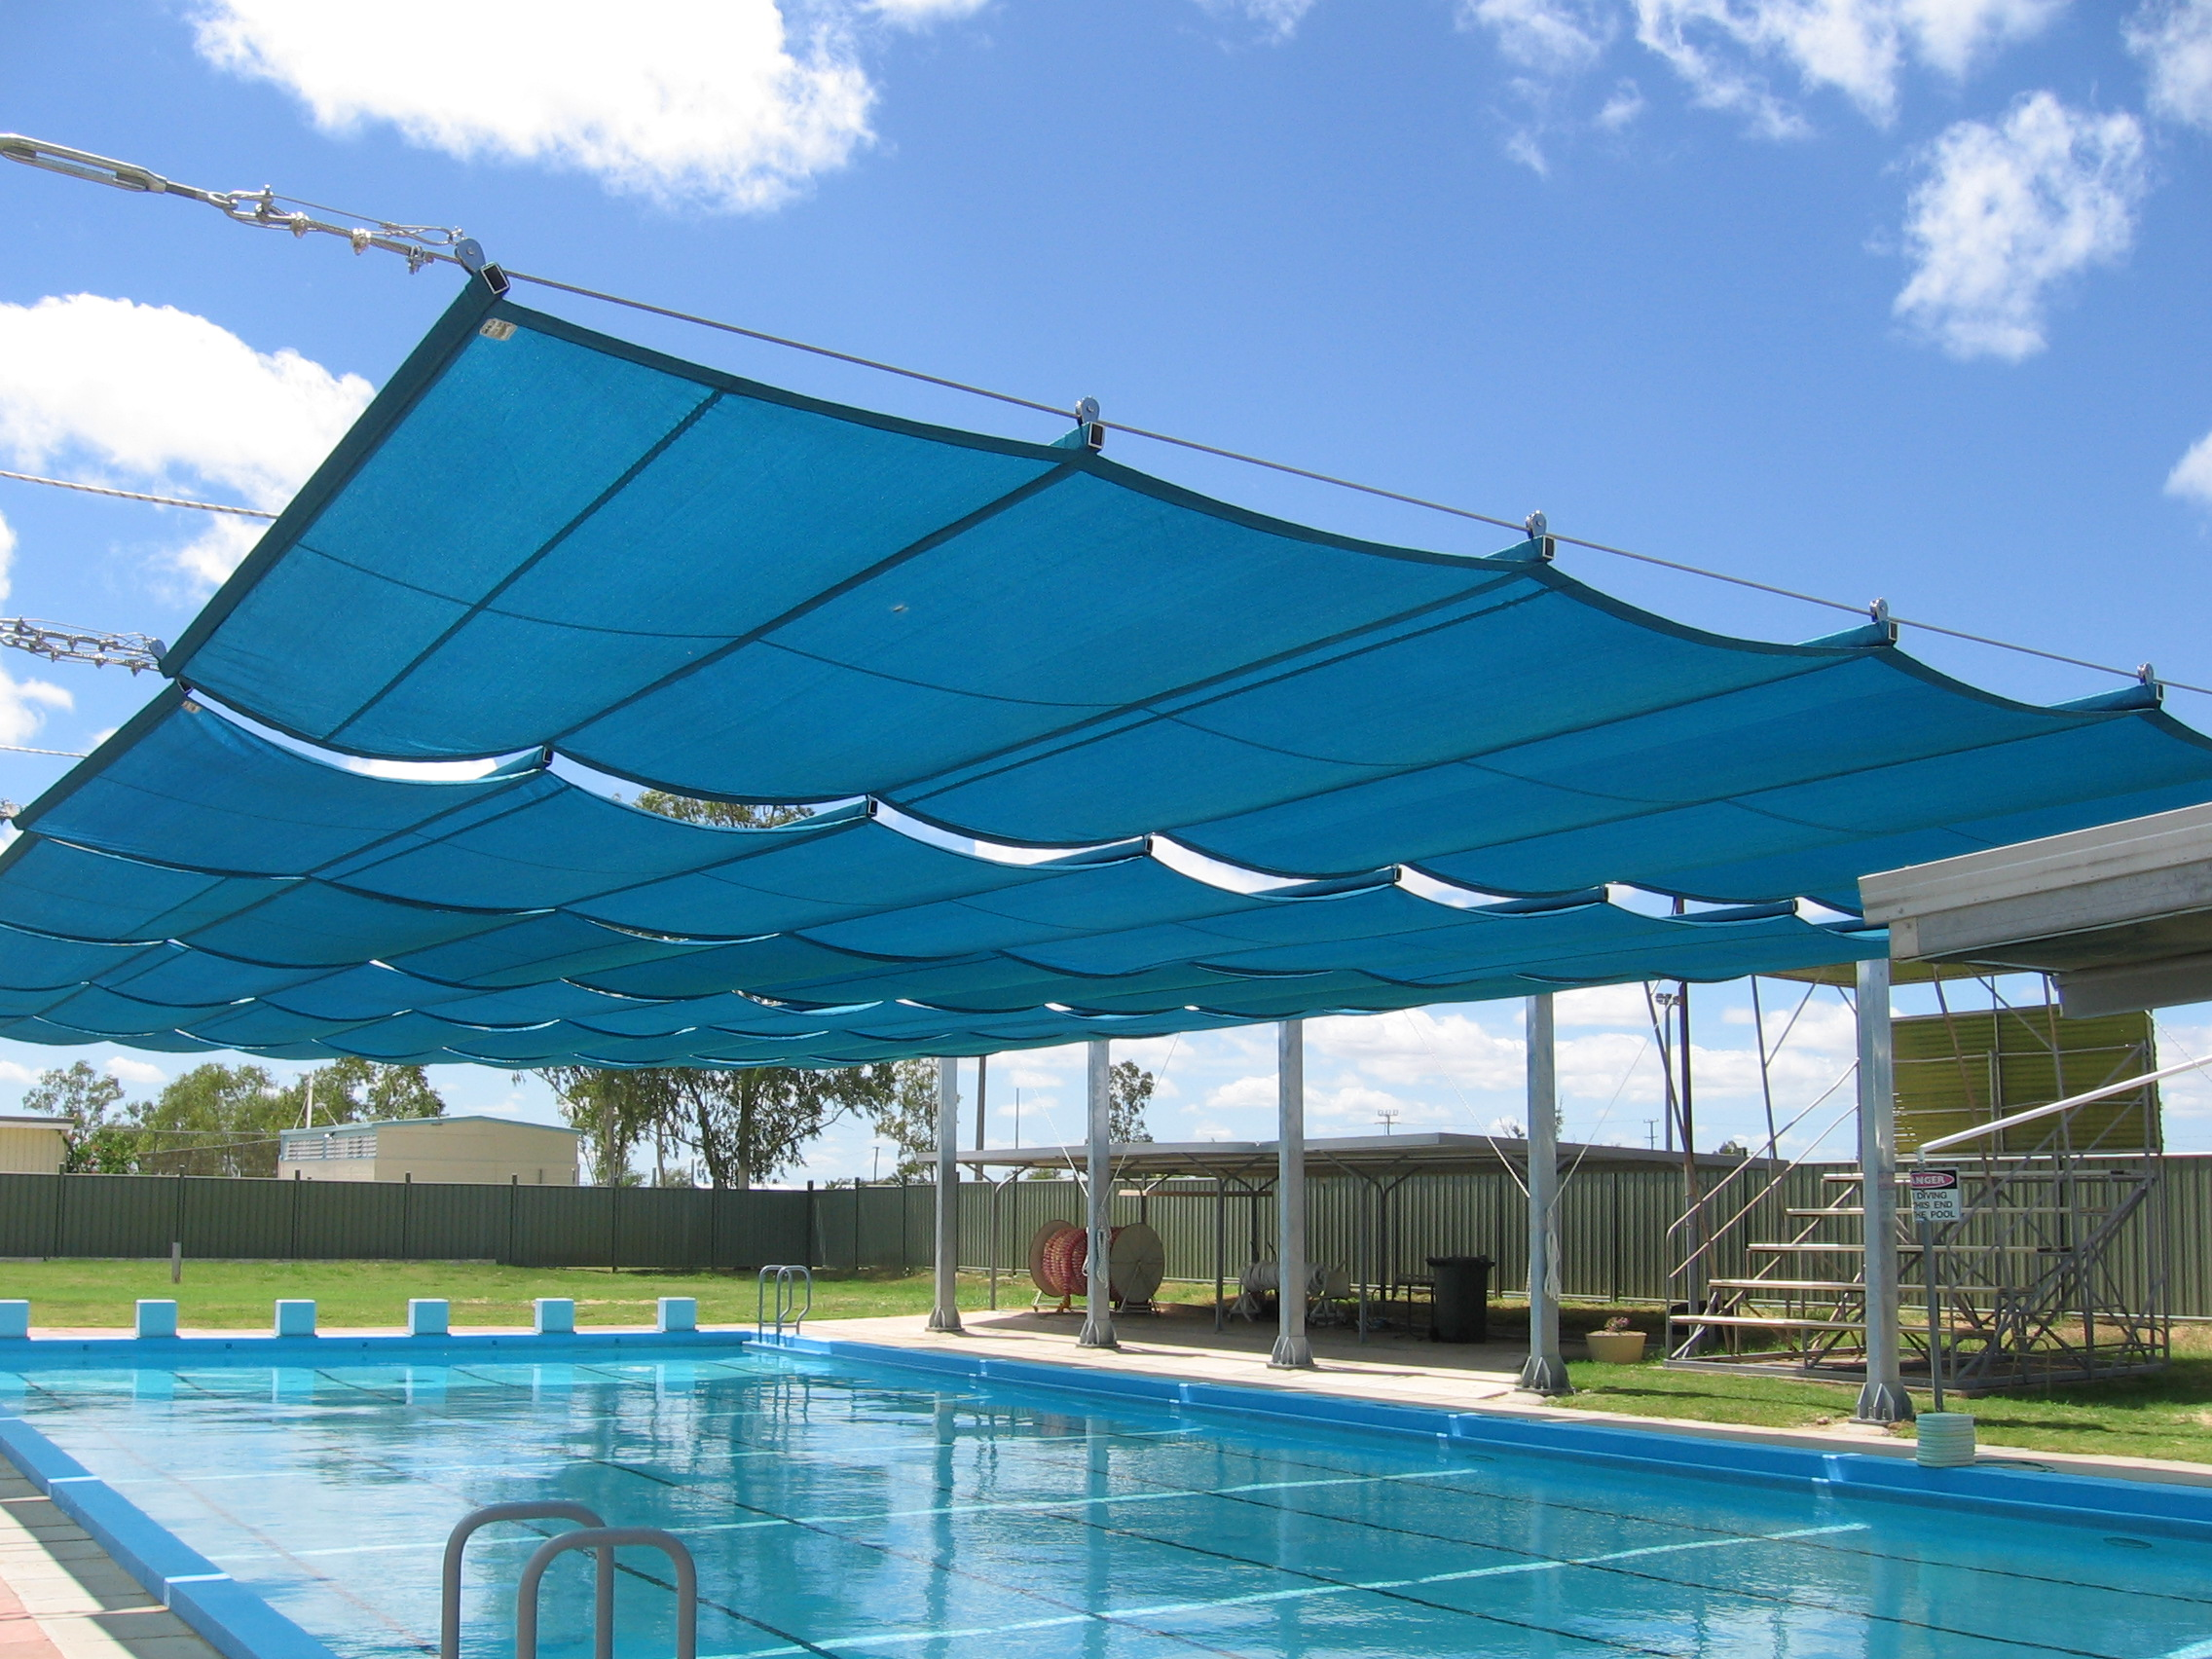 Swimming Pool Shades - AKAA Tents and Shades LLC